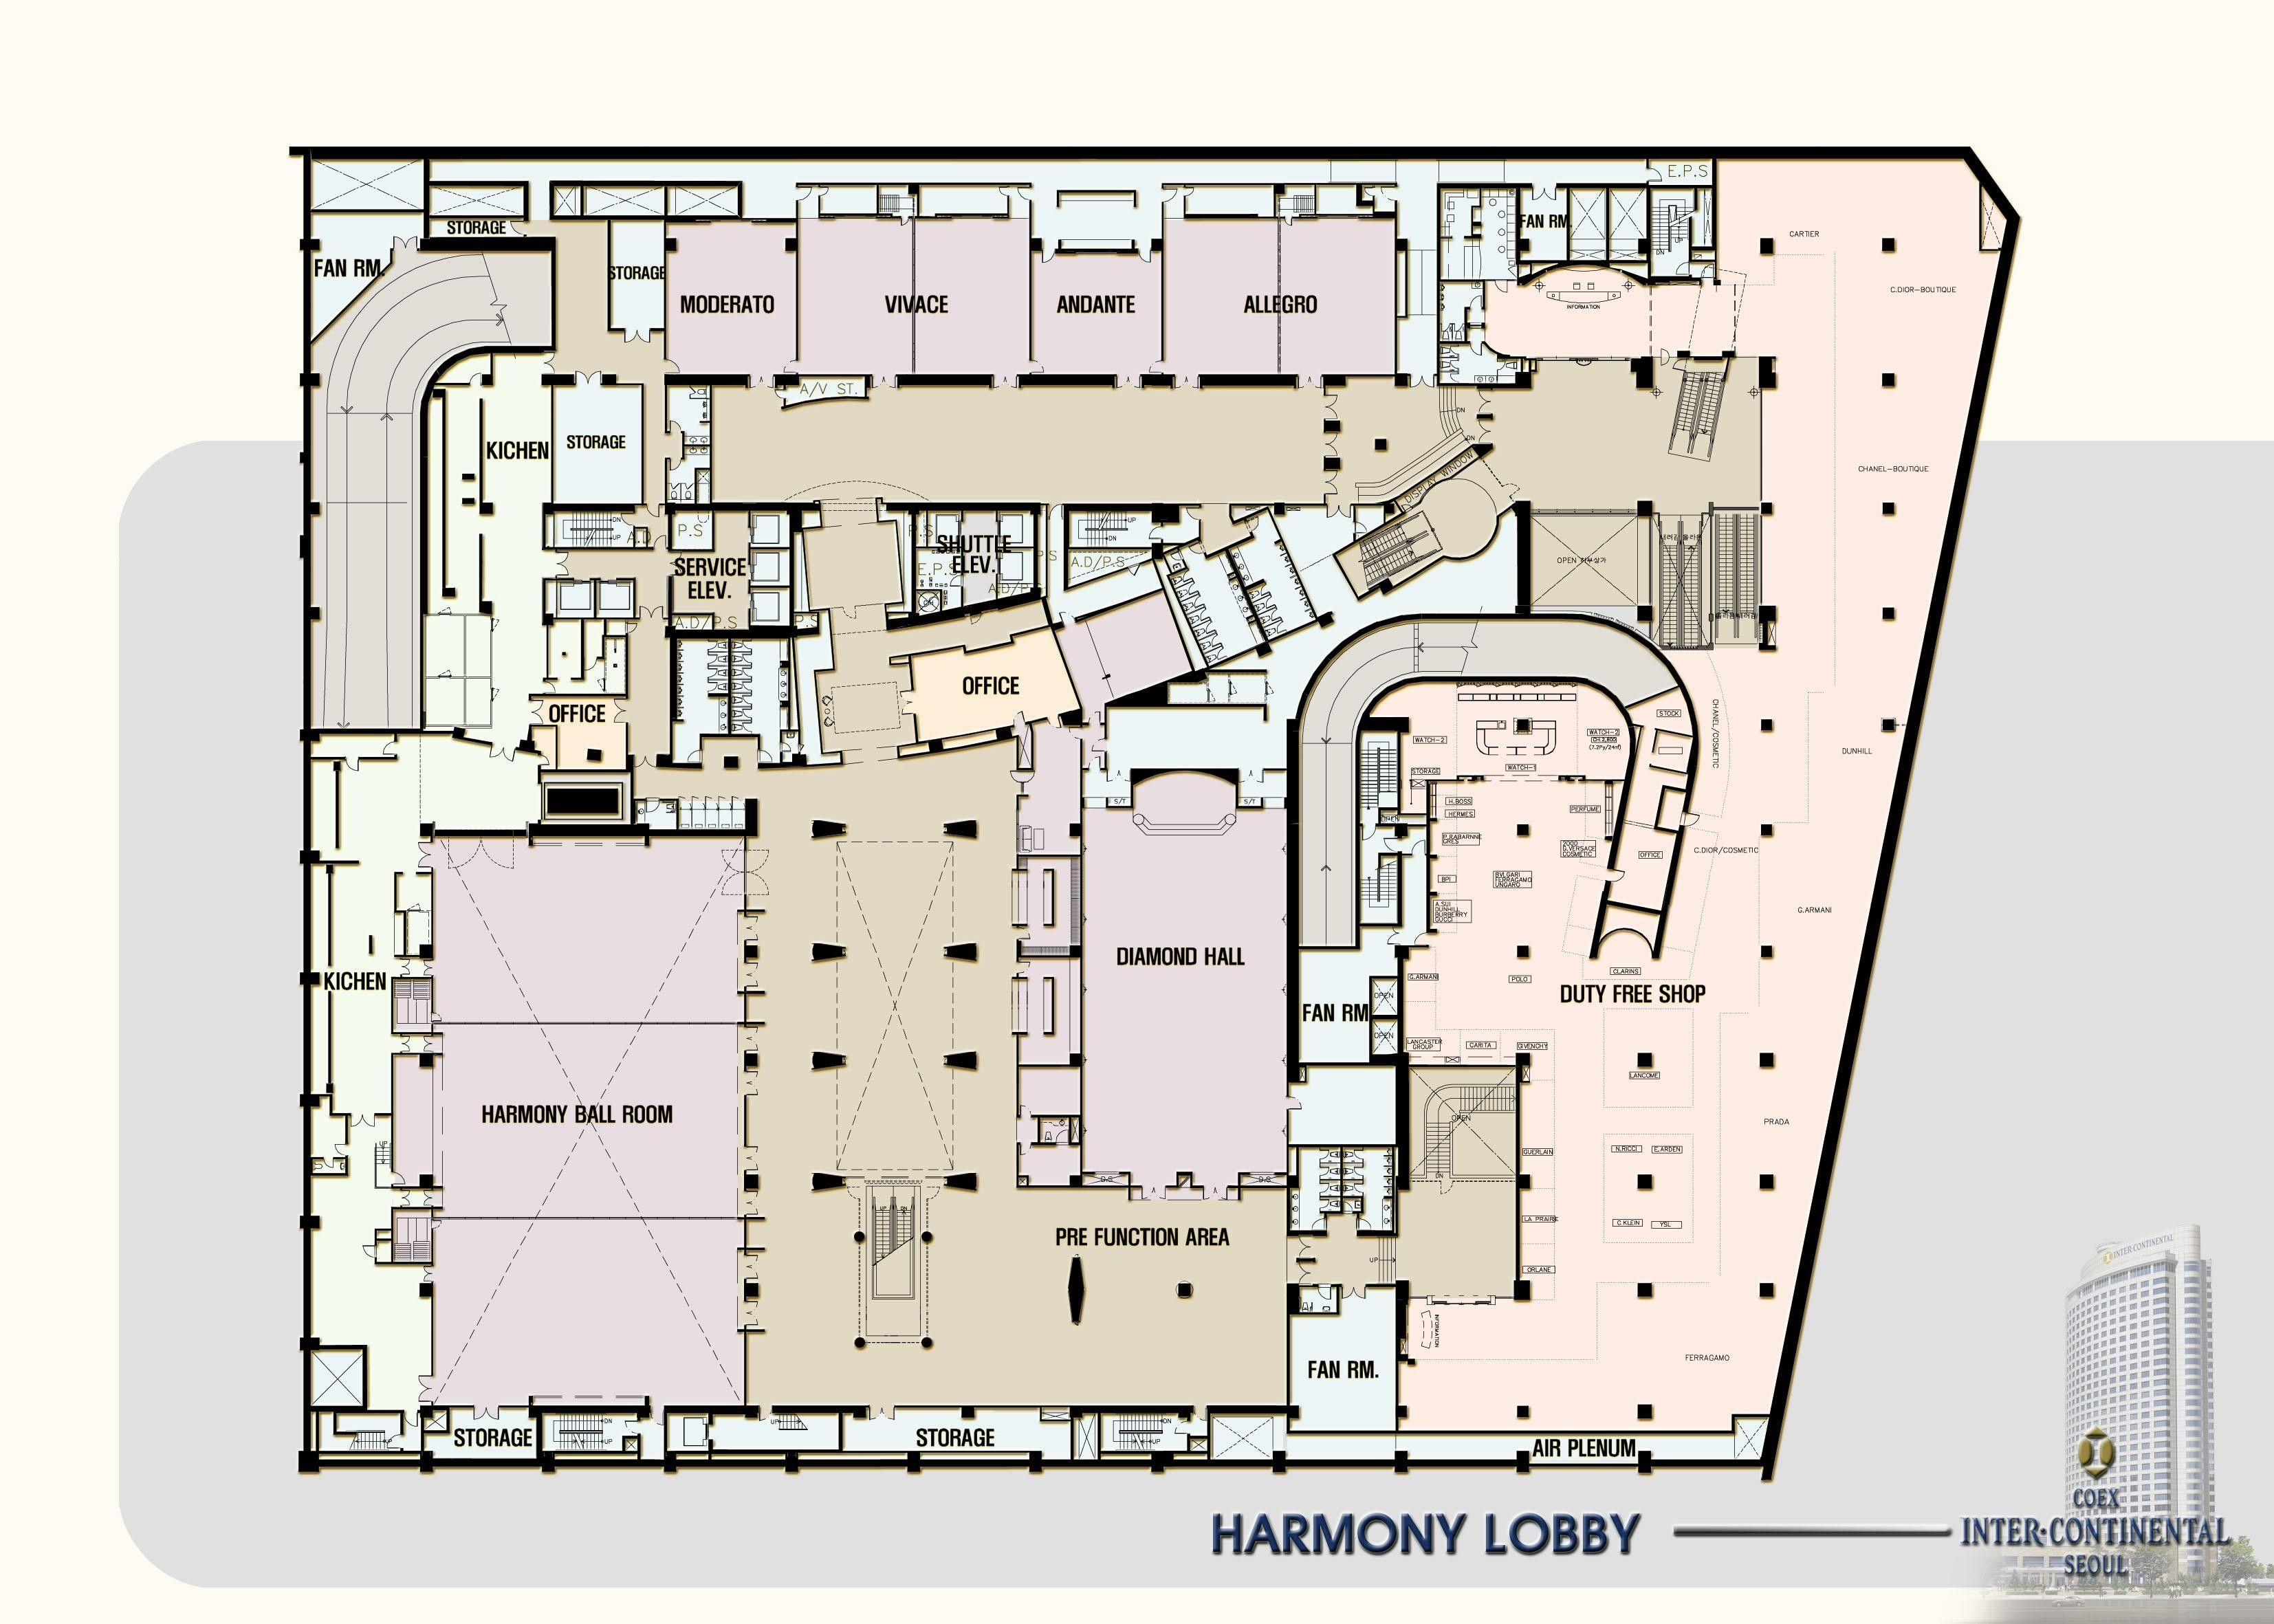 Hotel lobby floor plan google search hotel design for Floor layout